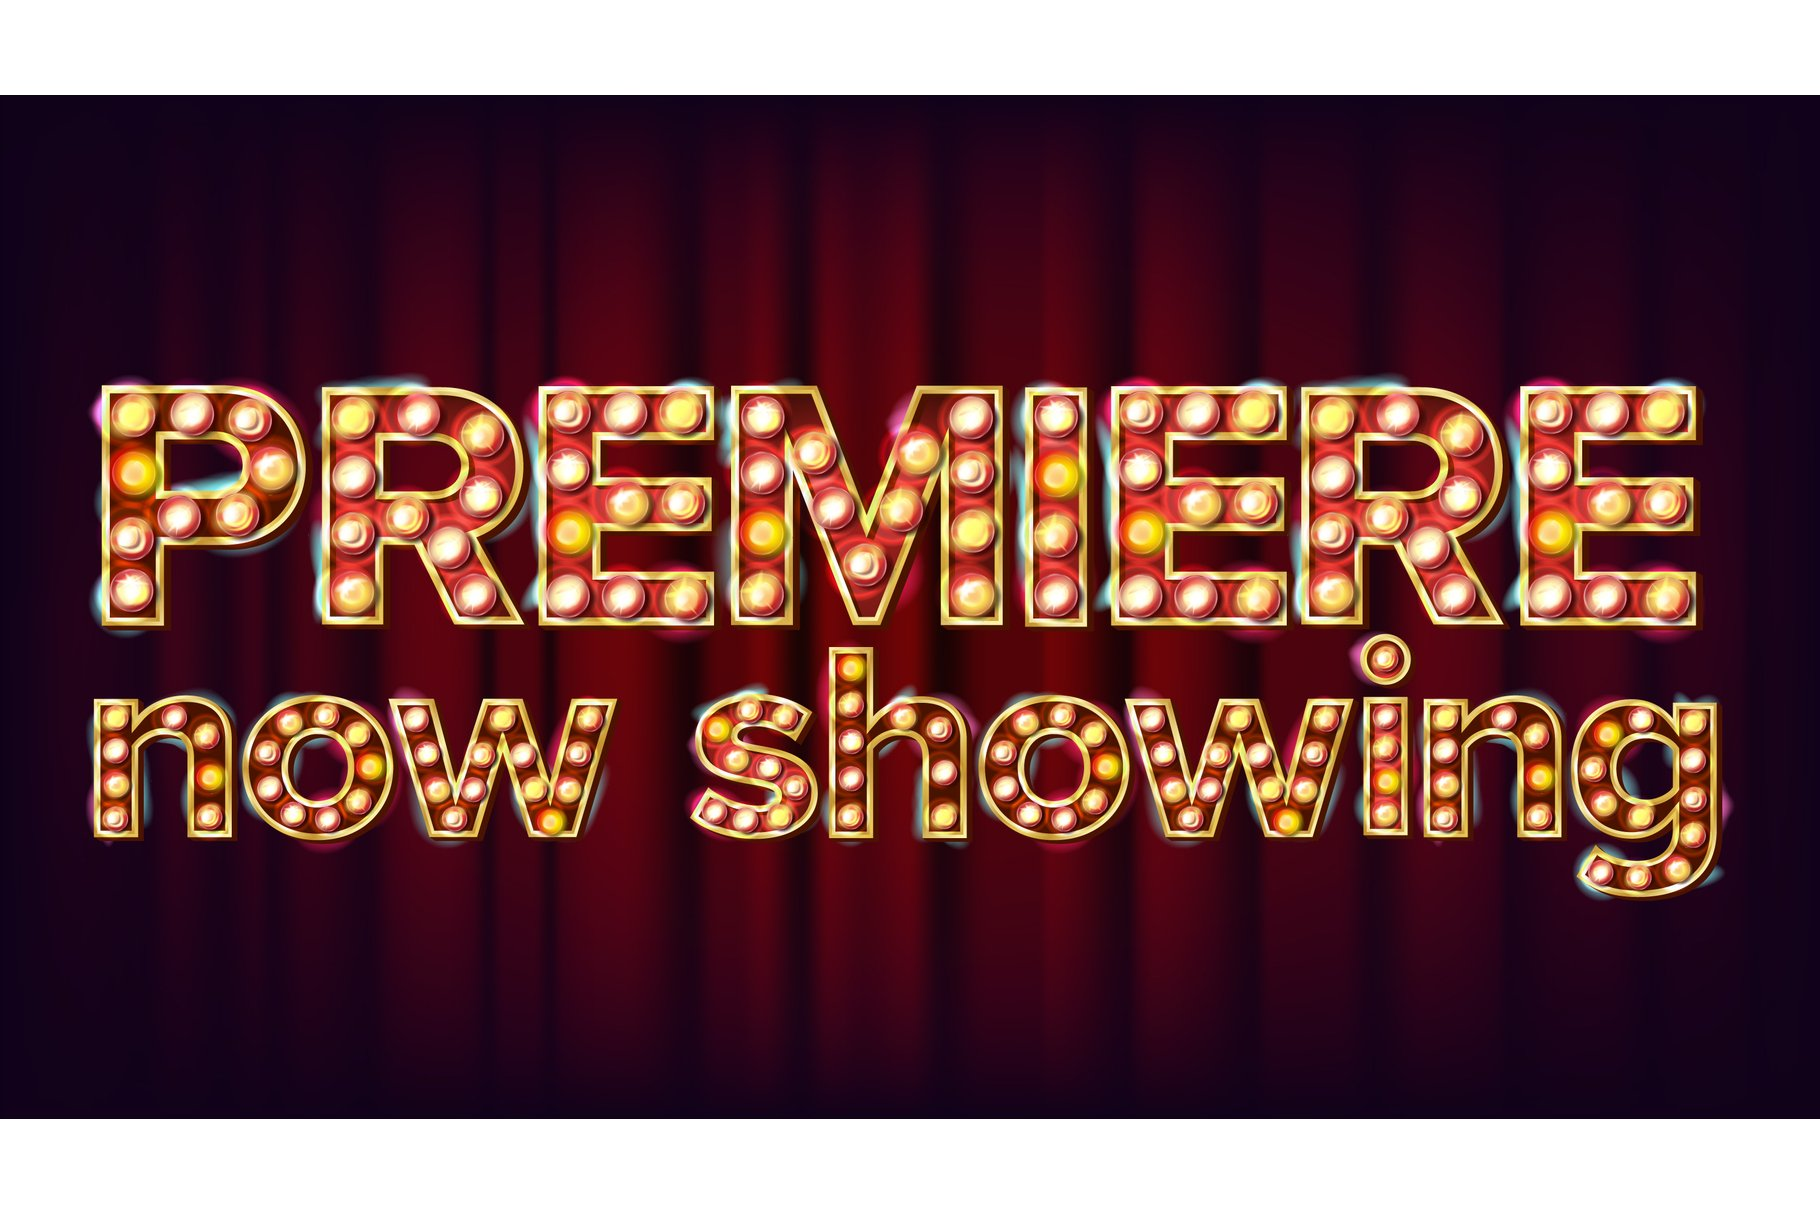 Premiere Now Showing Poster Vector. Cinema Glowing Lamps. example image 1